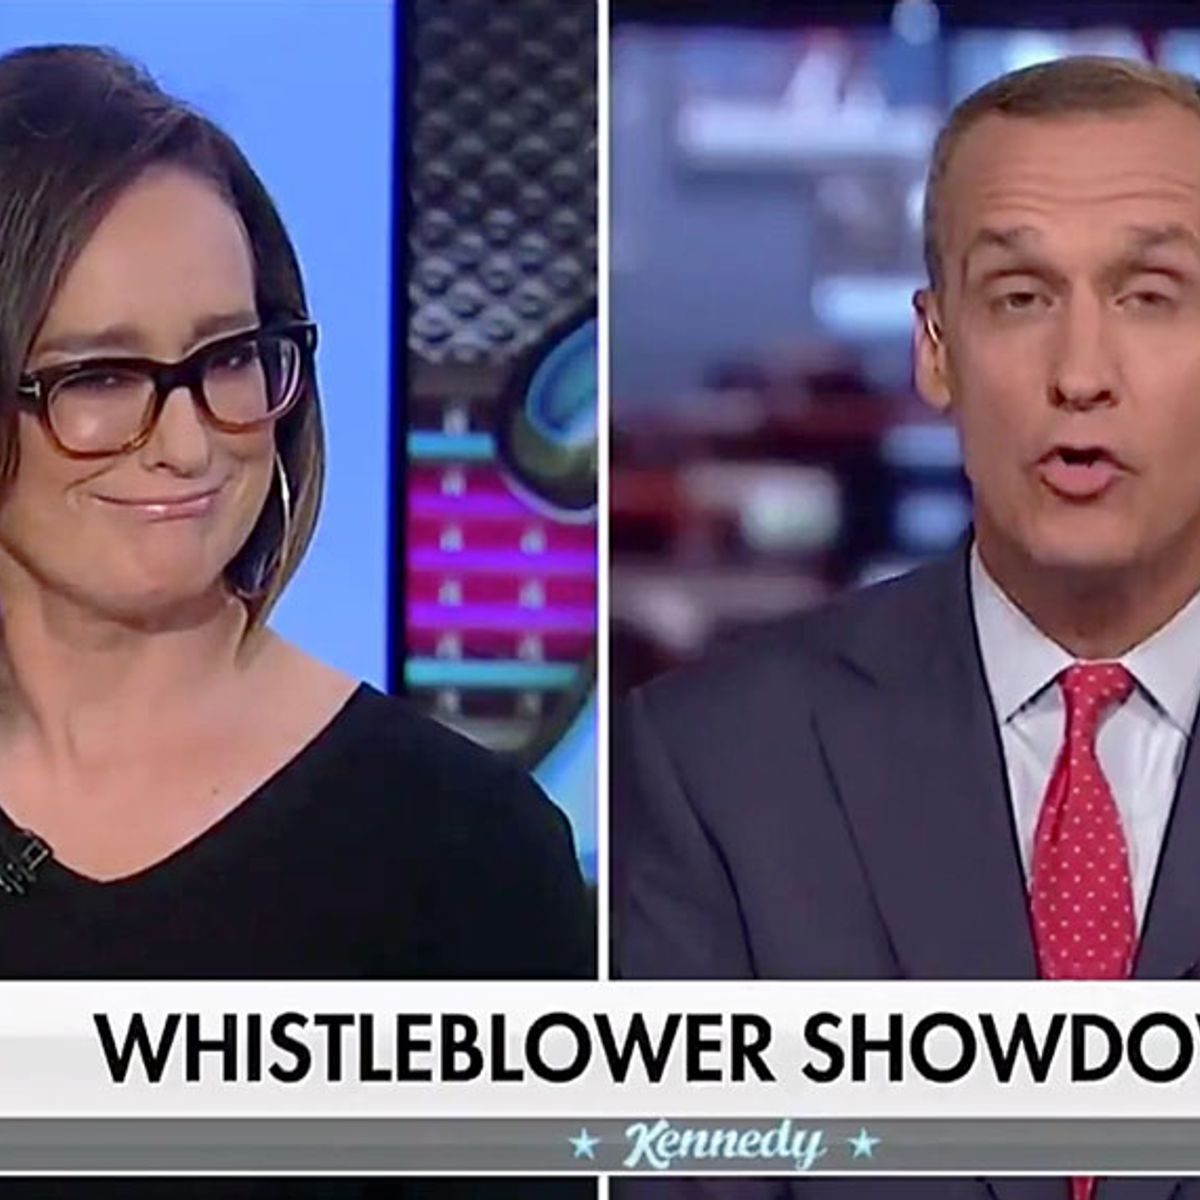 """Fox host asks Corey Lewandowski if he is drunk on air: """"Did you have a little merlot with dinner?"""""""